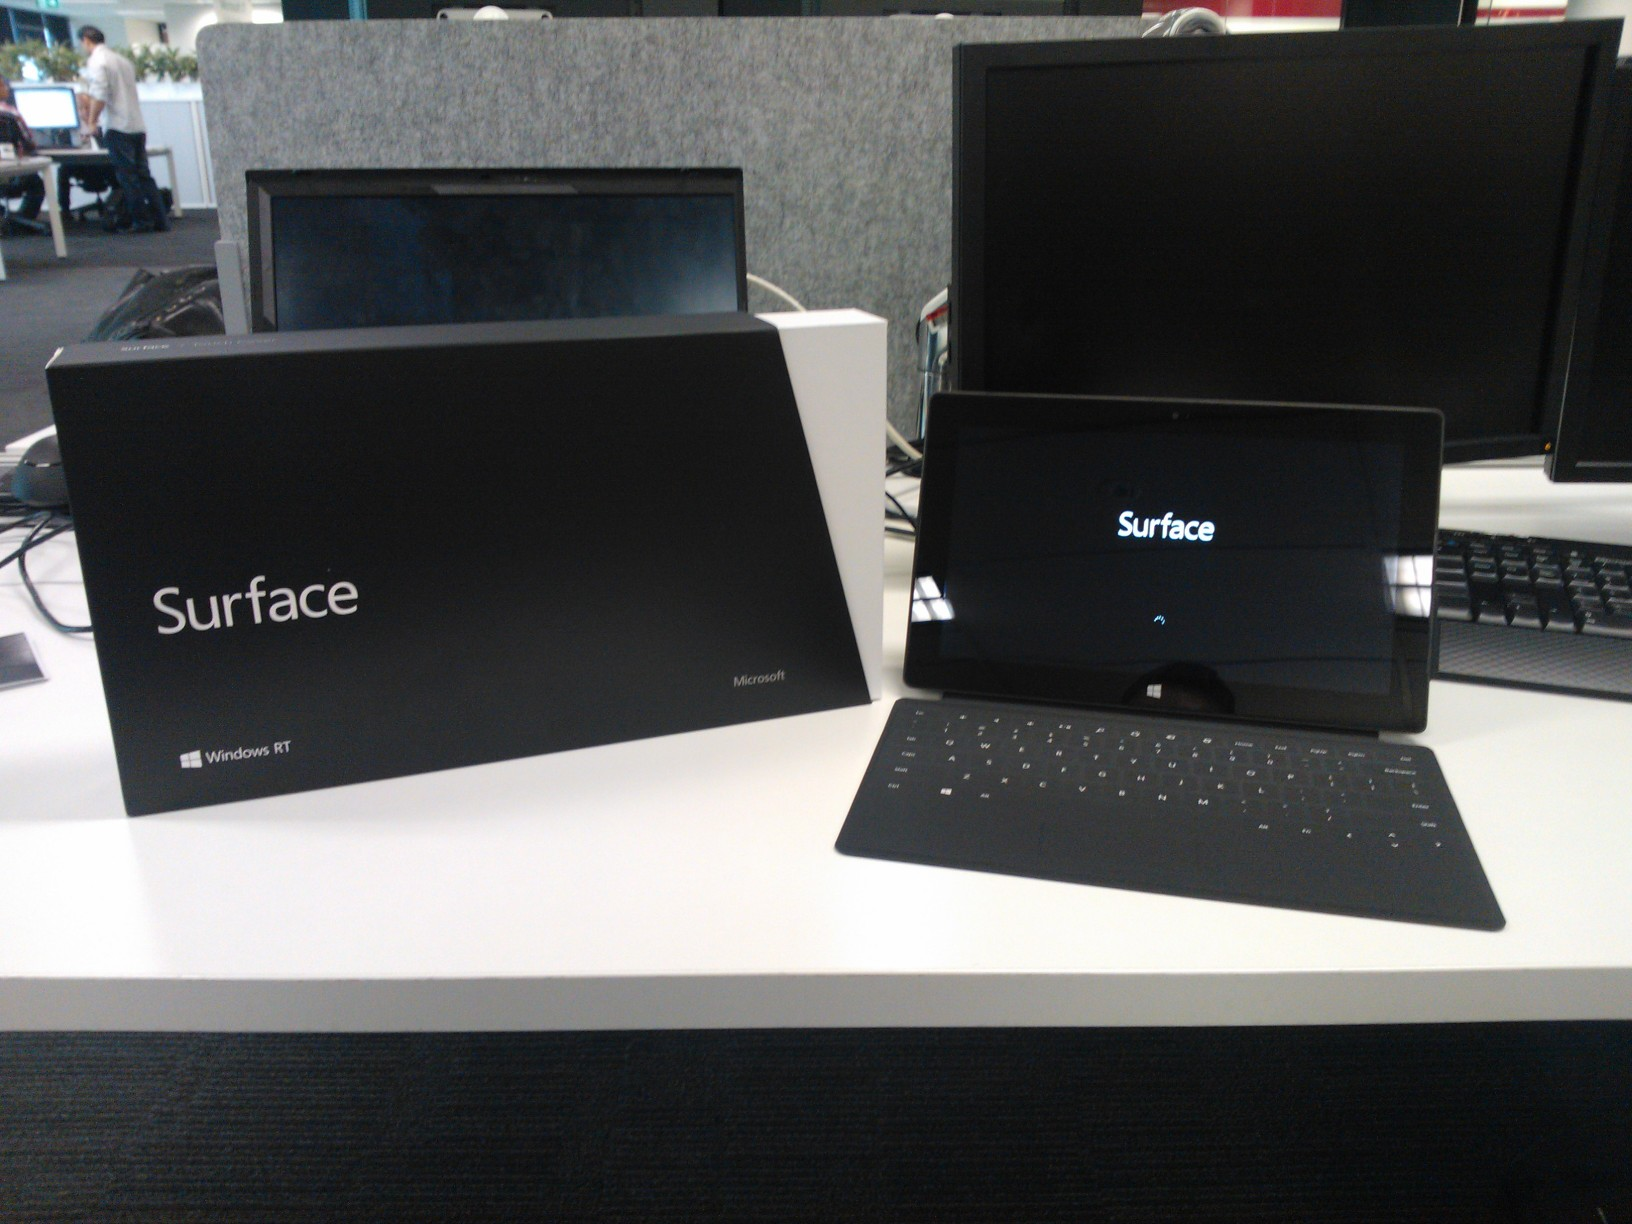 File:Microsoft Surface tablet computer and its box jpg